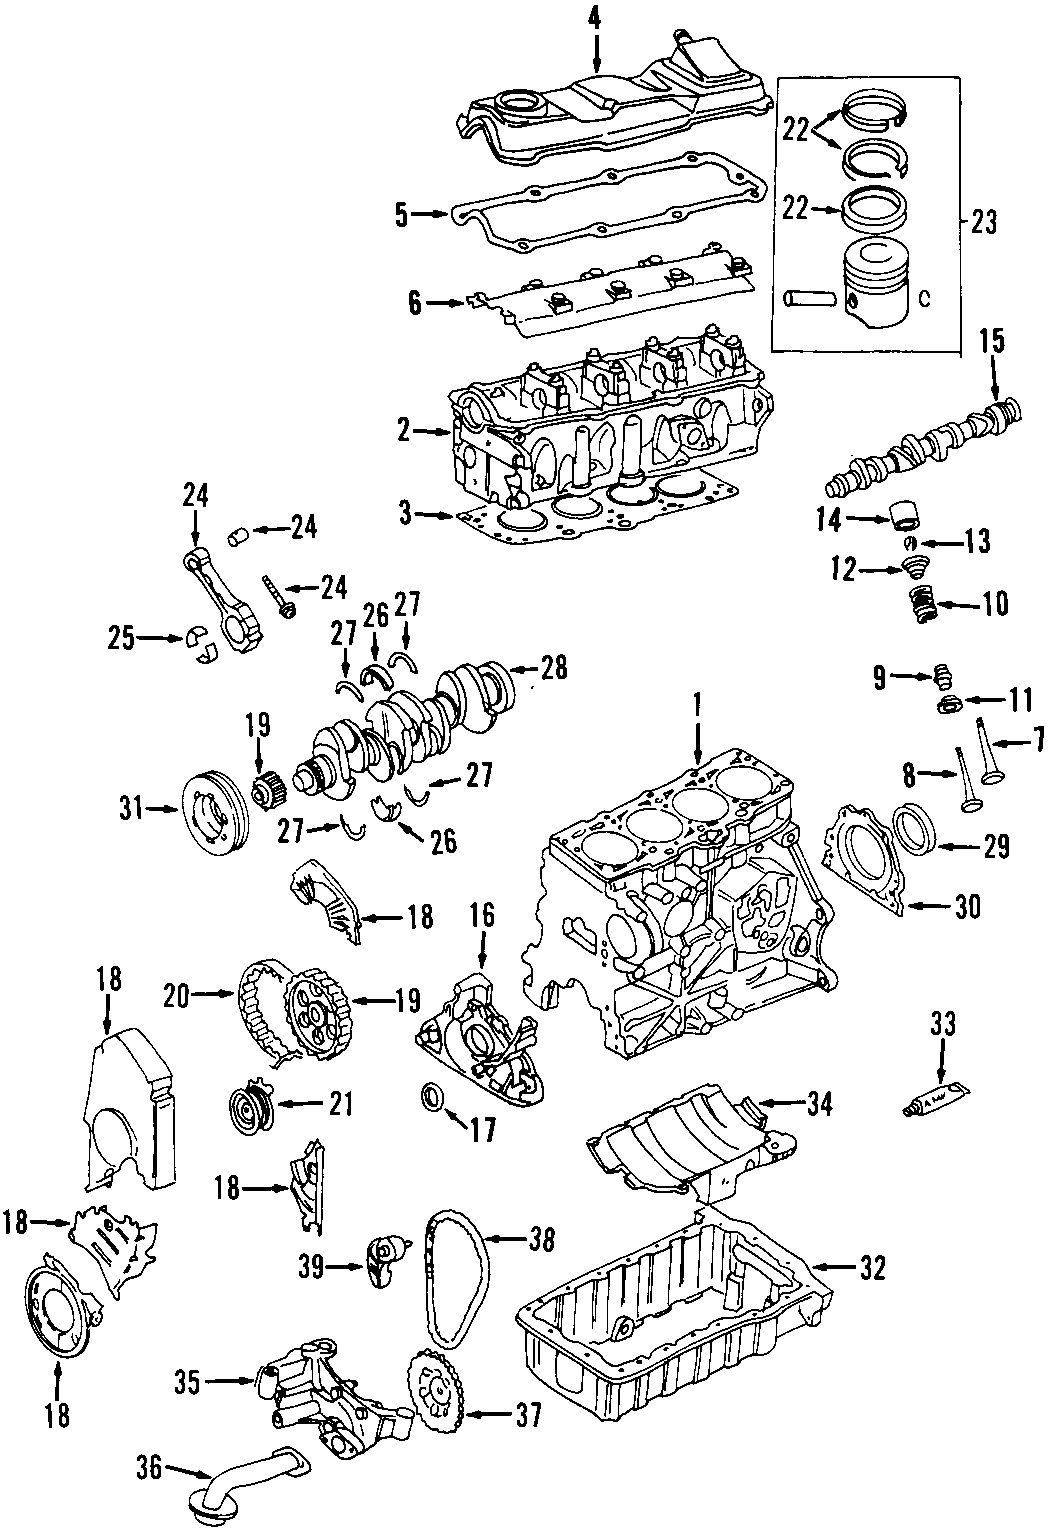 Diagram Vw Beetle 2 0 Engine Diagram Full Version